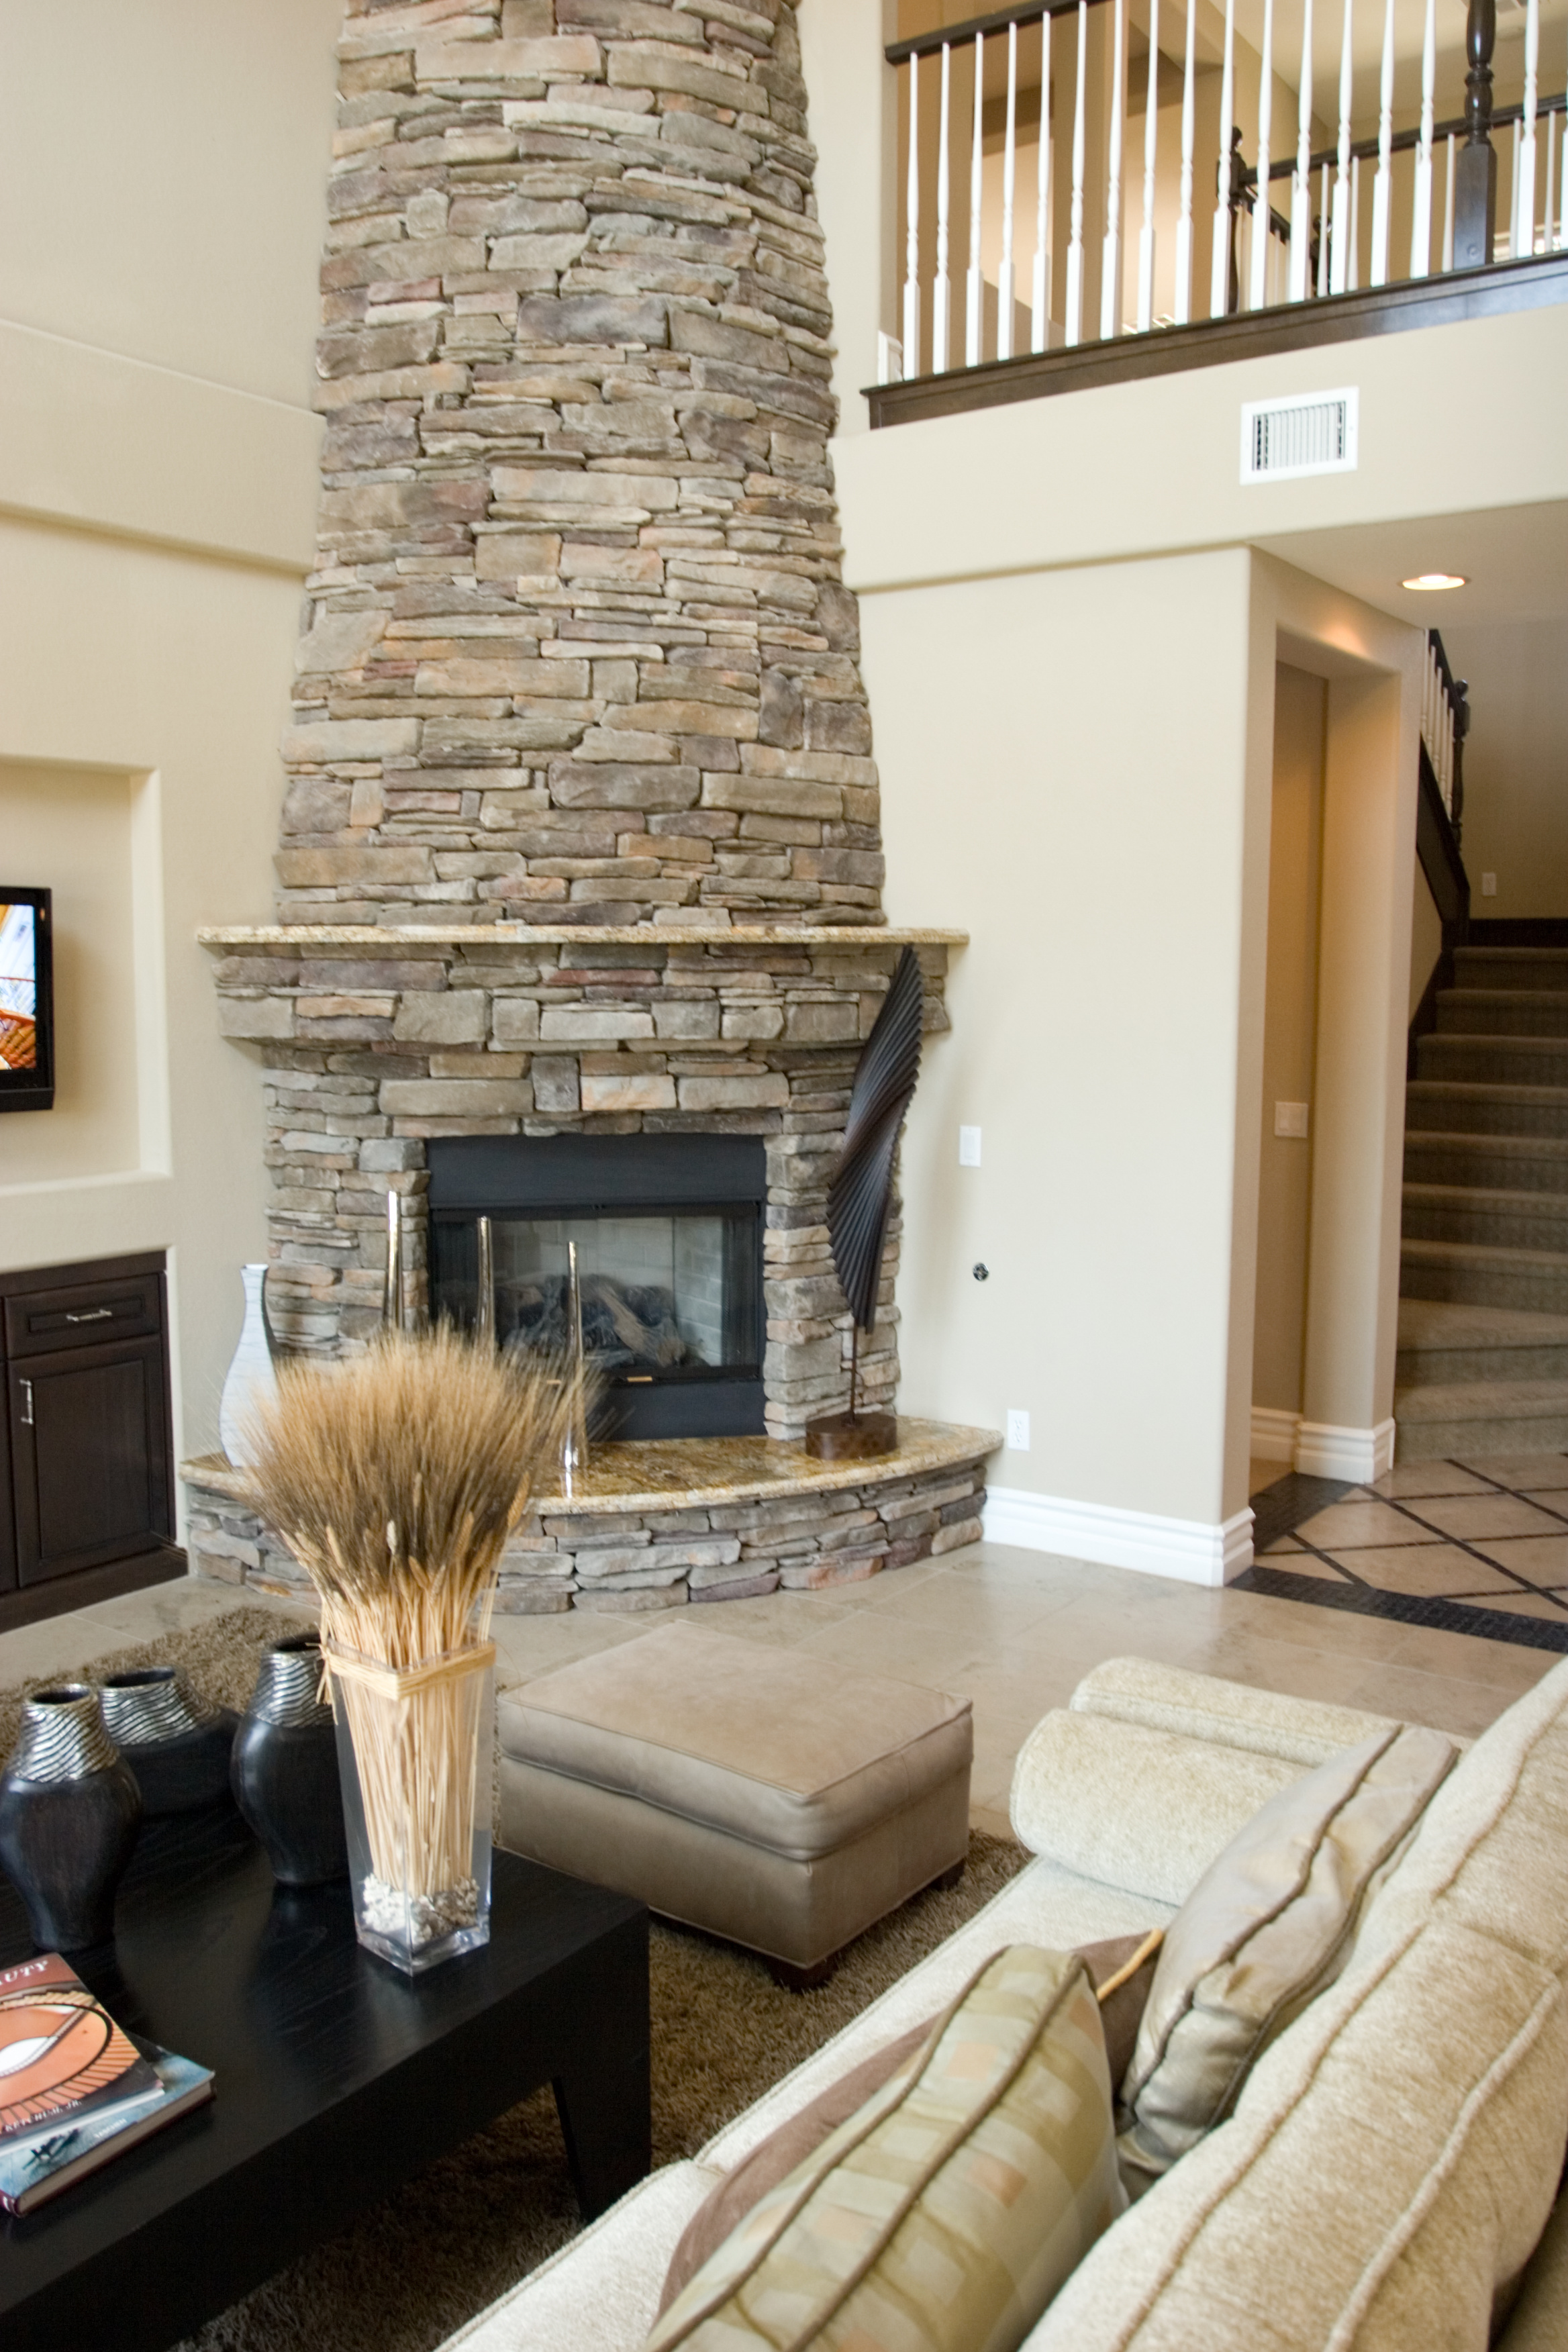 Matching a Masonry Fireplace to Your Home's Interior in Syosset, NY